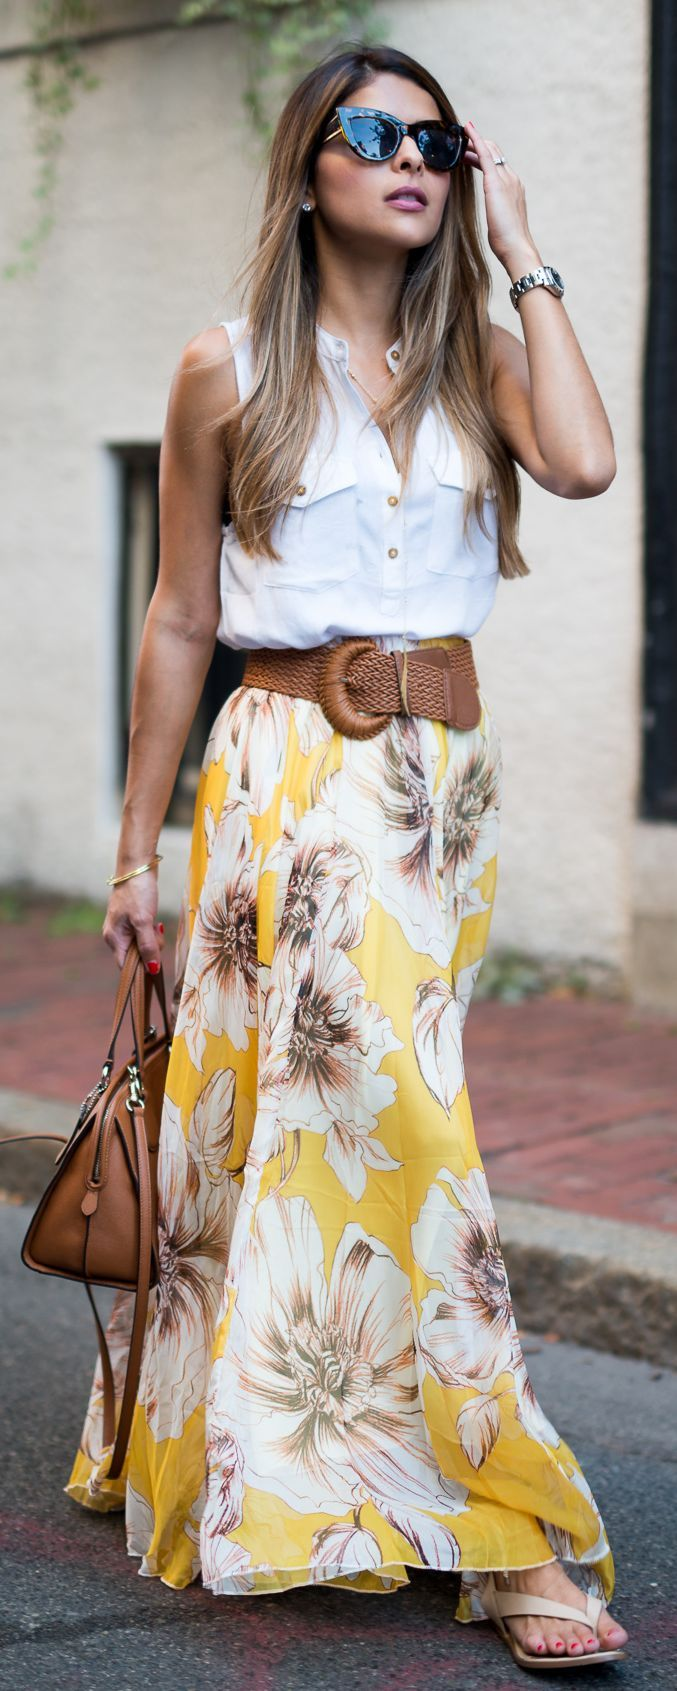 Floral Maxi Skirt Outfit Idea by The Girl From Panama